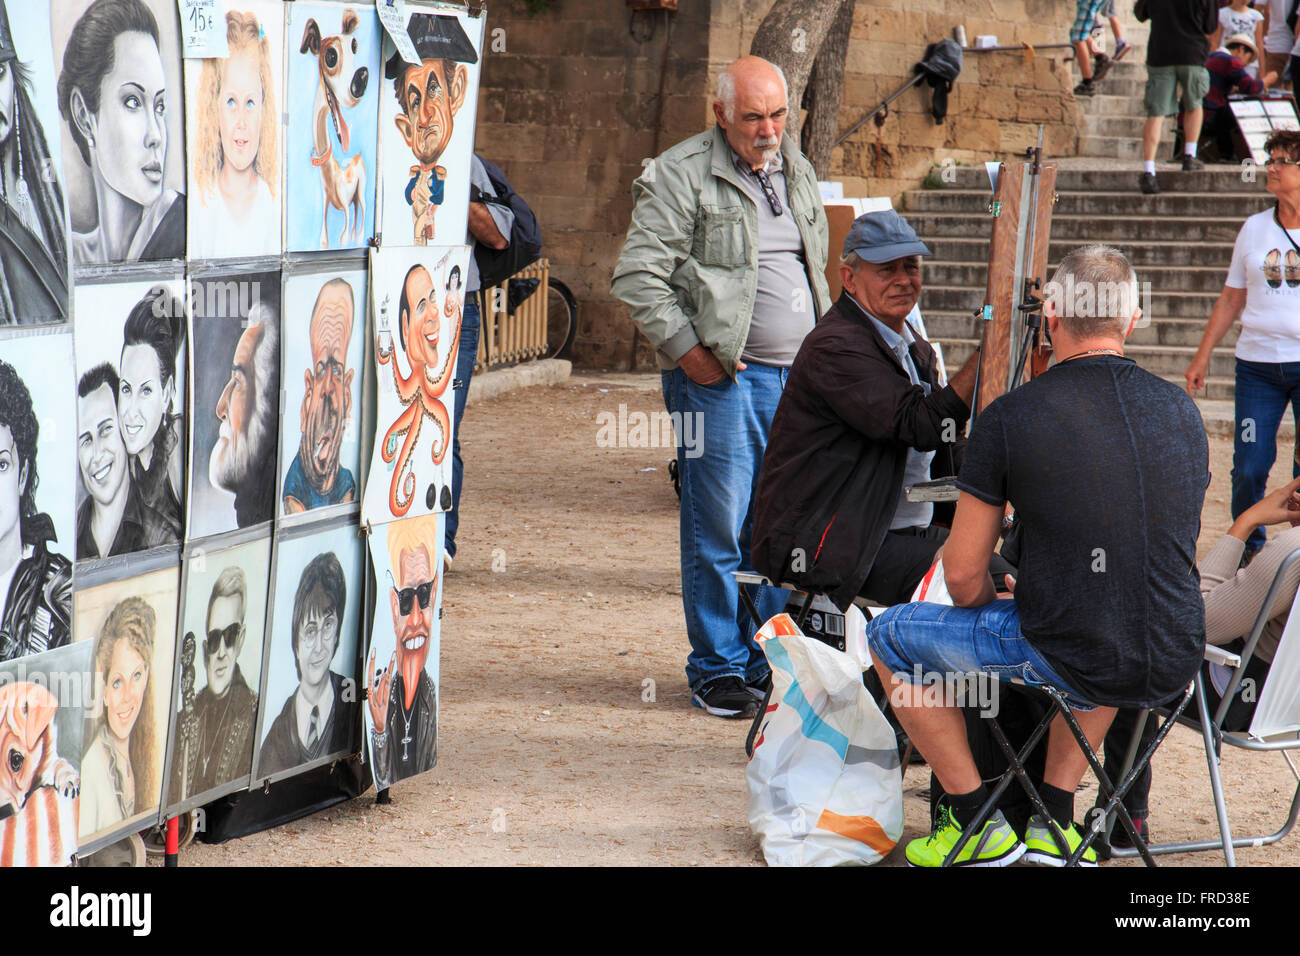 Europe, Spain, Balearic Islands, Mallorca, Palma de Mallorca, street artist paints portraits and caricatures. - Stock Image